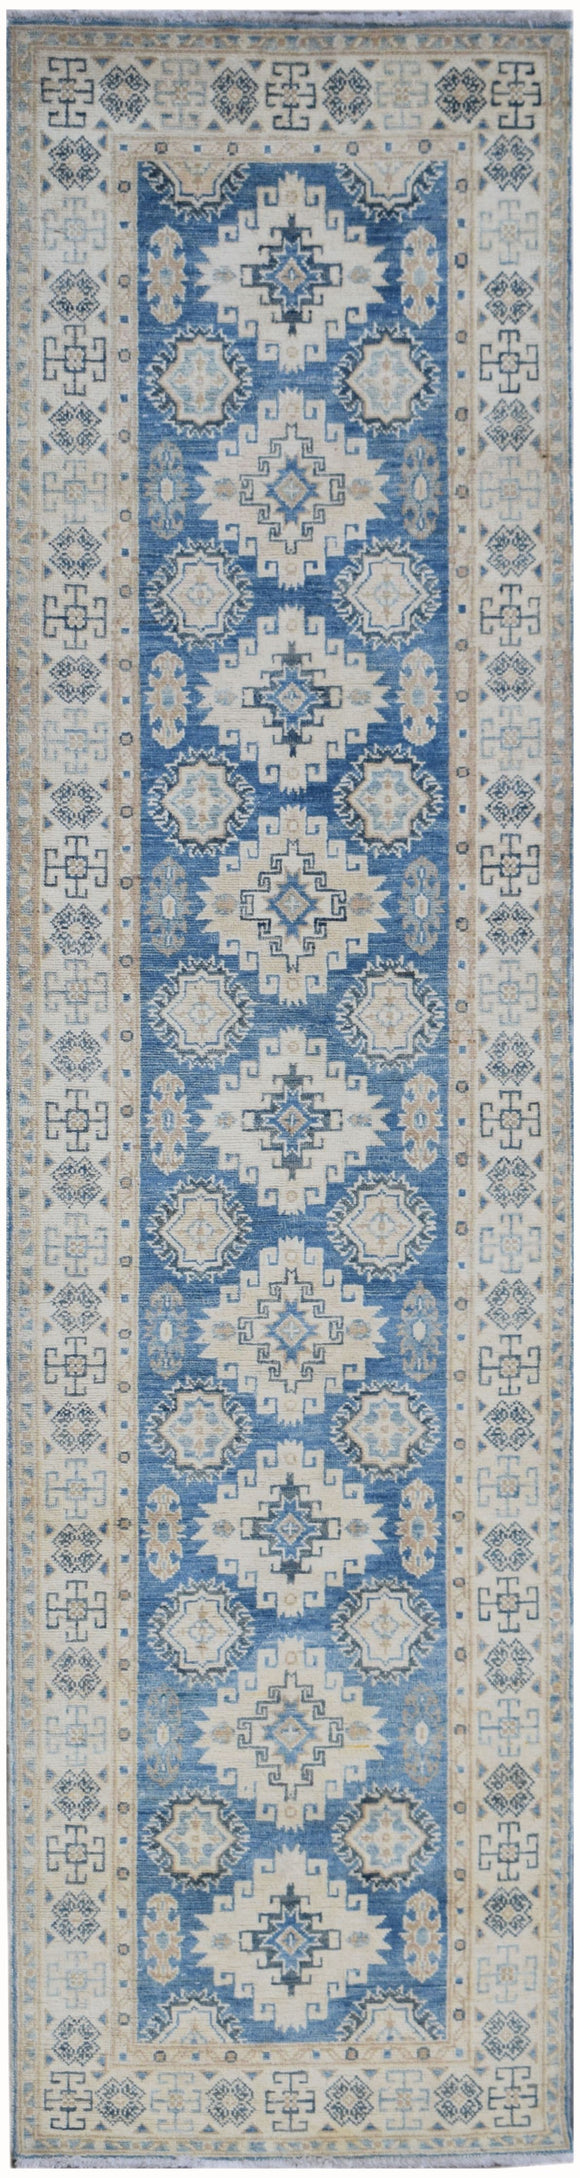 Handmade Sultan Collection Hallway Runner | 290 x 77 cm | 9'6